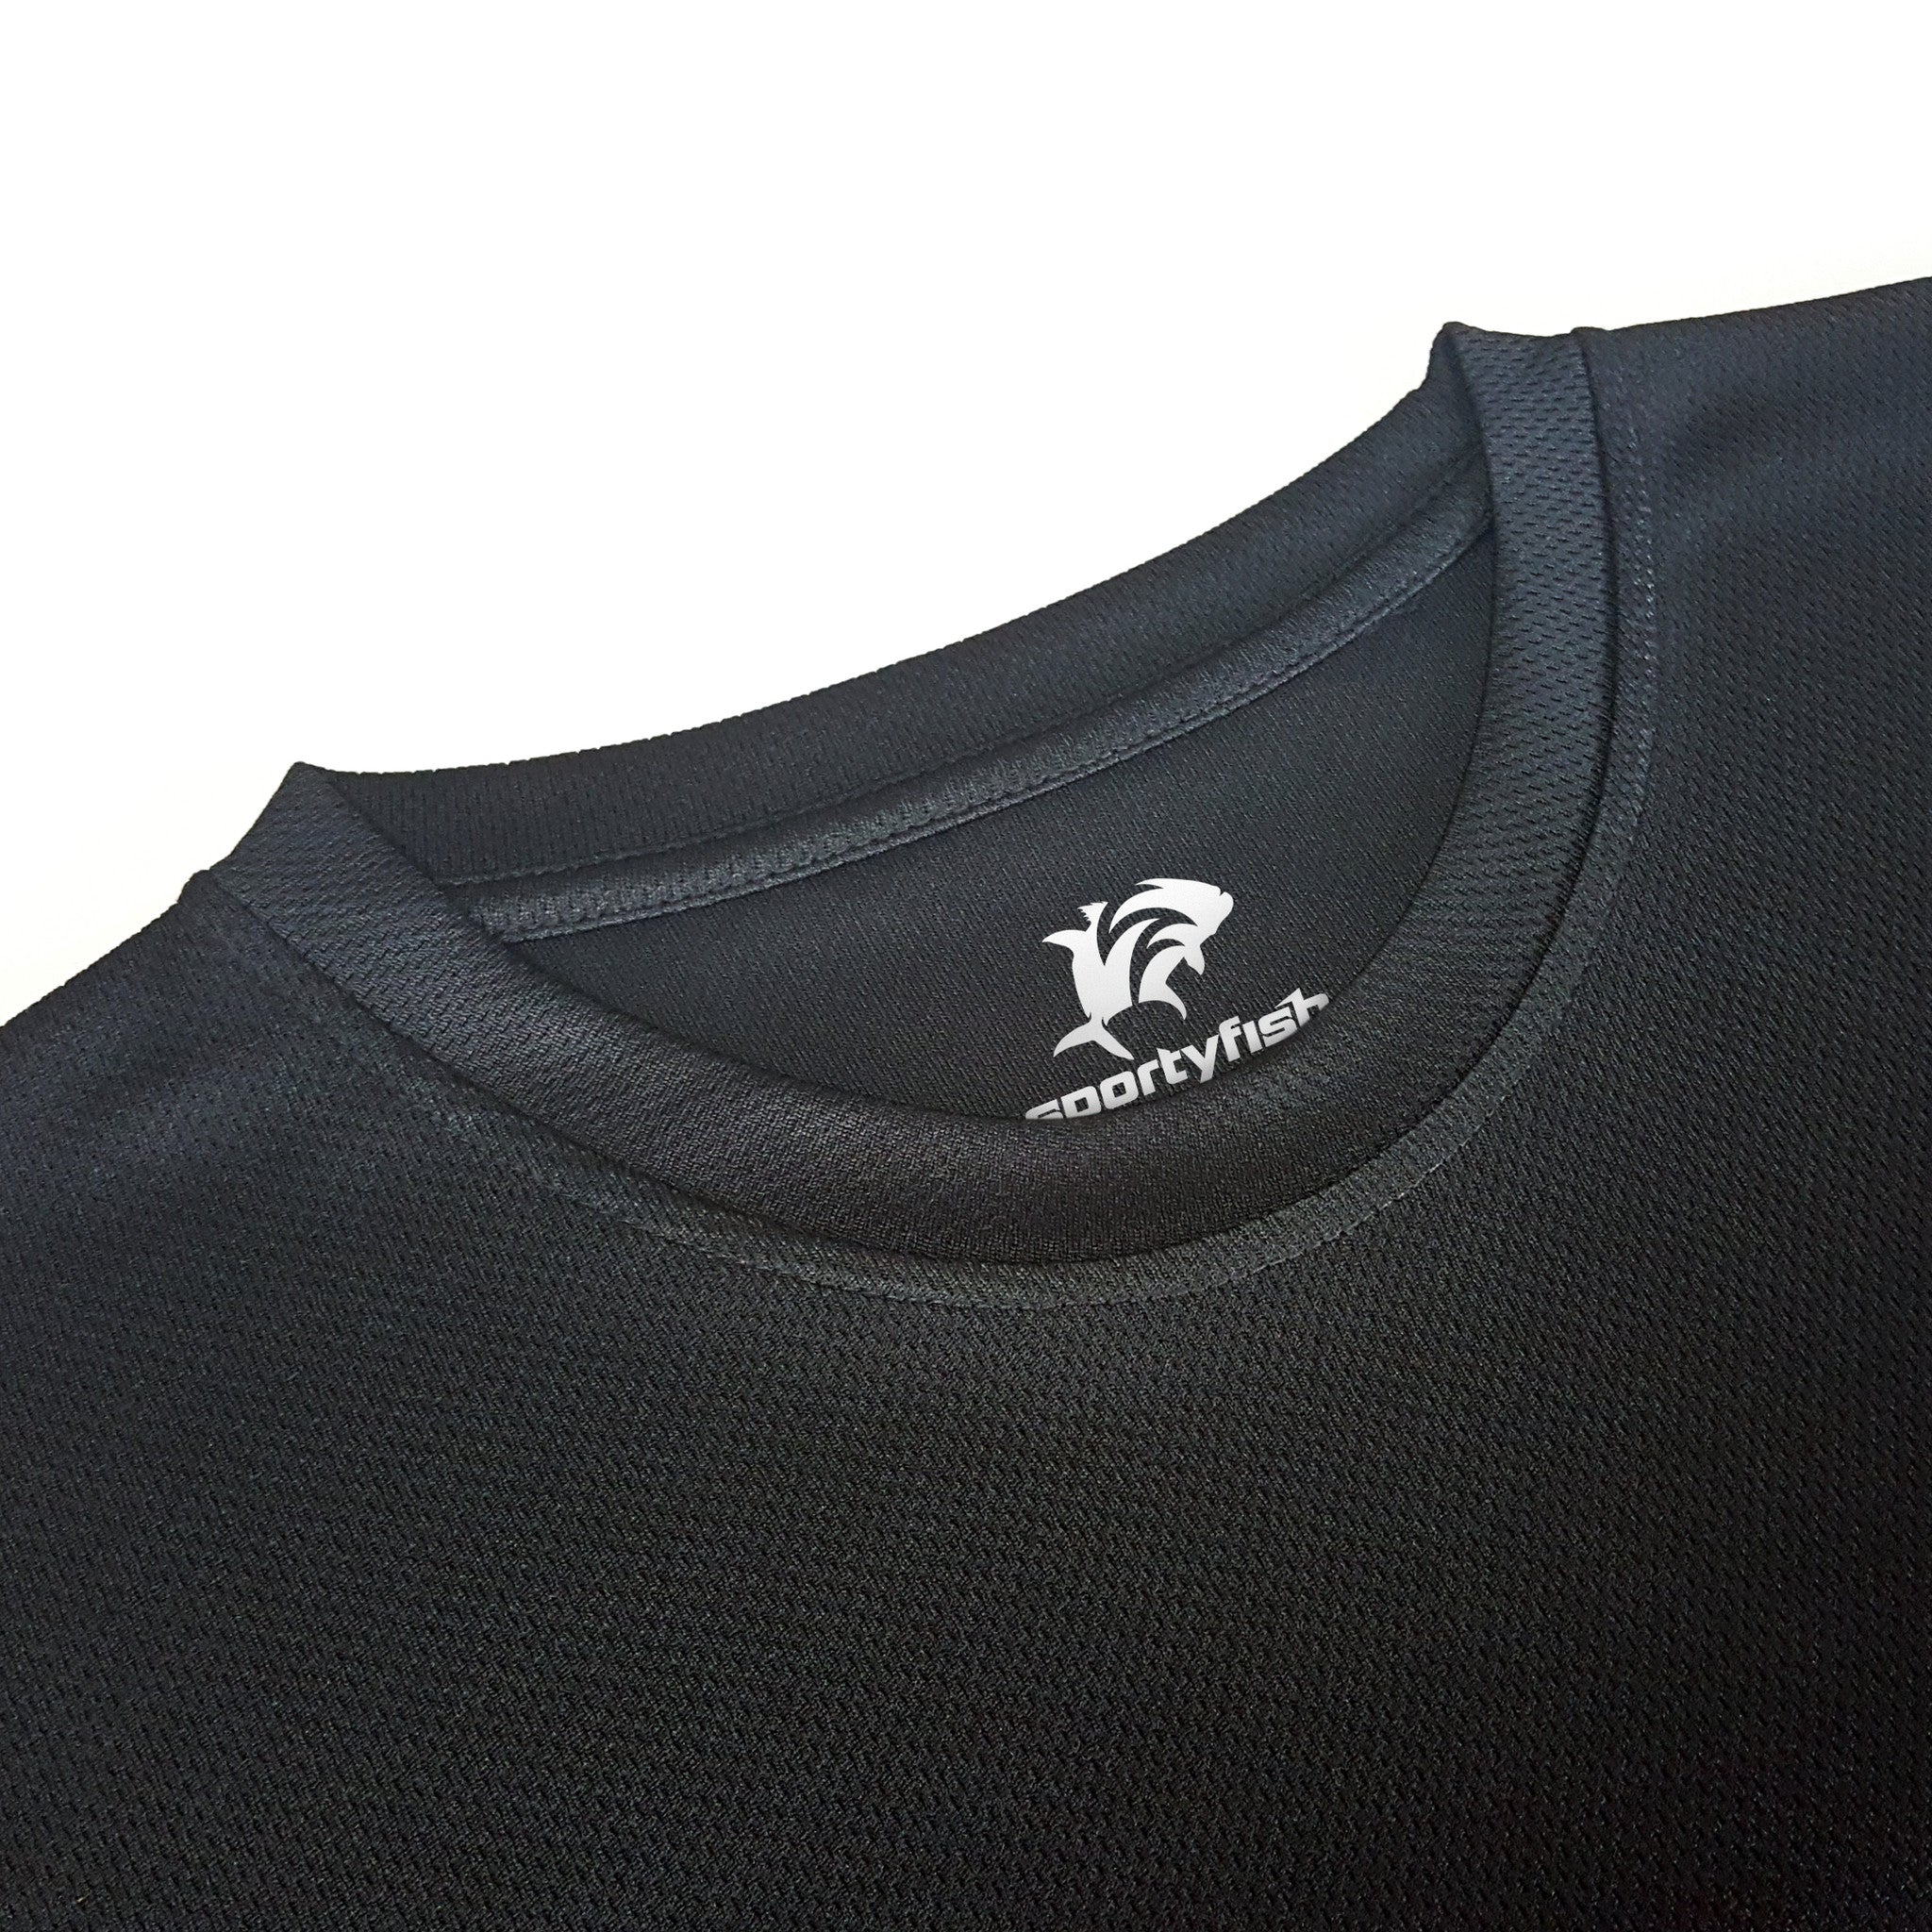 SportyFish Black Series black Long-sleeves t-shirt: Giant Trevally close-up view 3